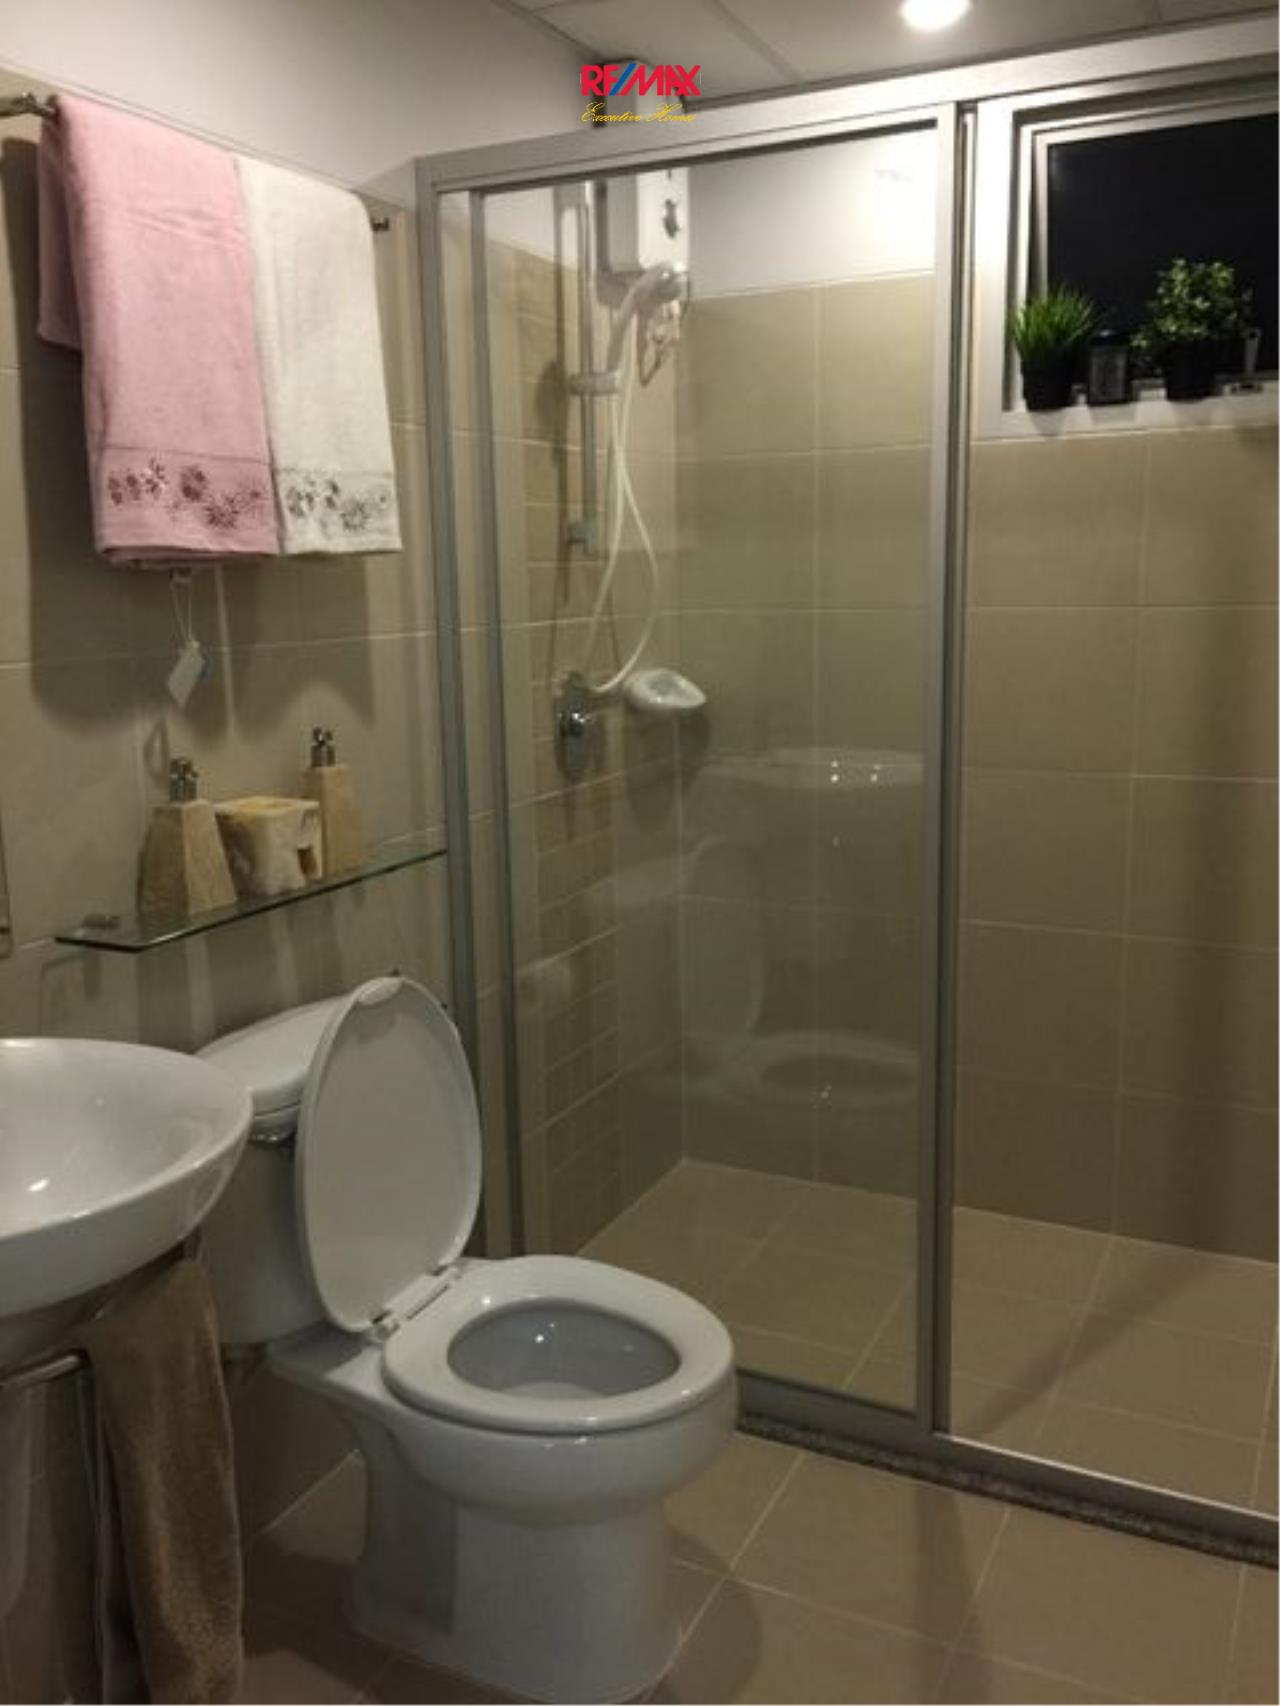 RE/MAX Executive Homes Agency's Lovely 1 Bedroom for rent and Sale Supalai Park Ekamai-Thonglor 7